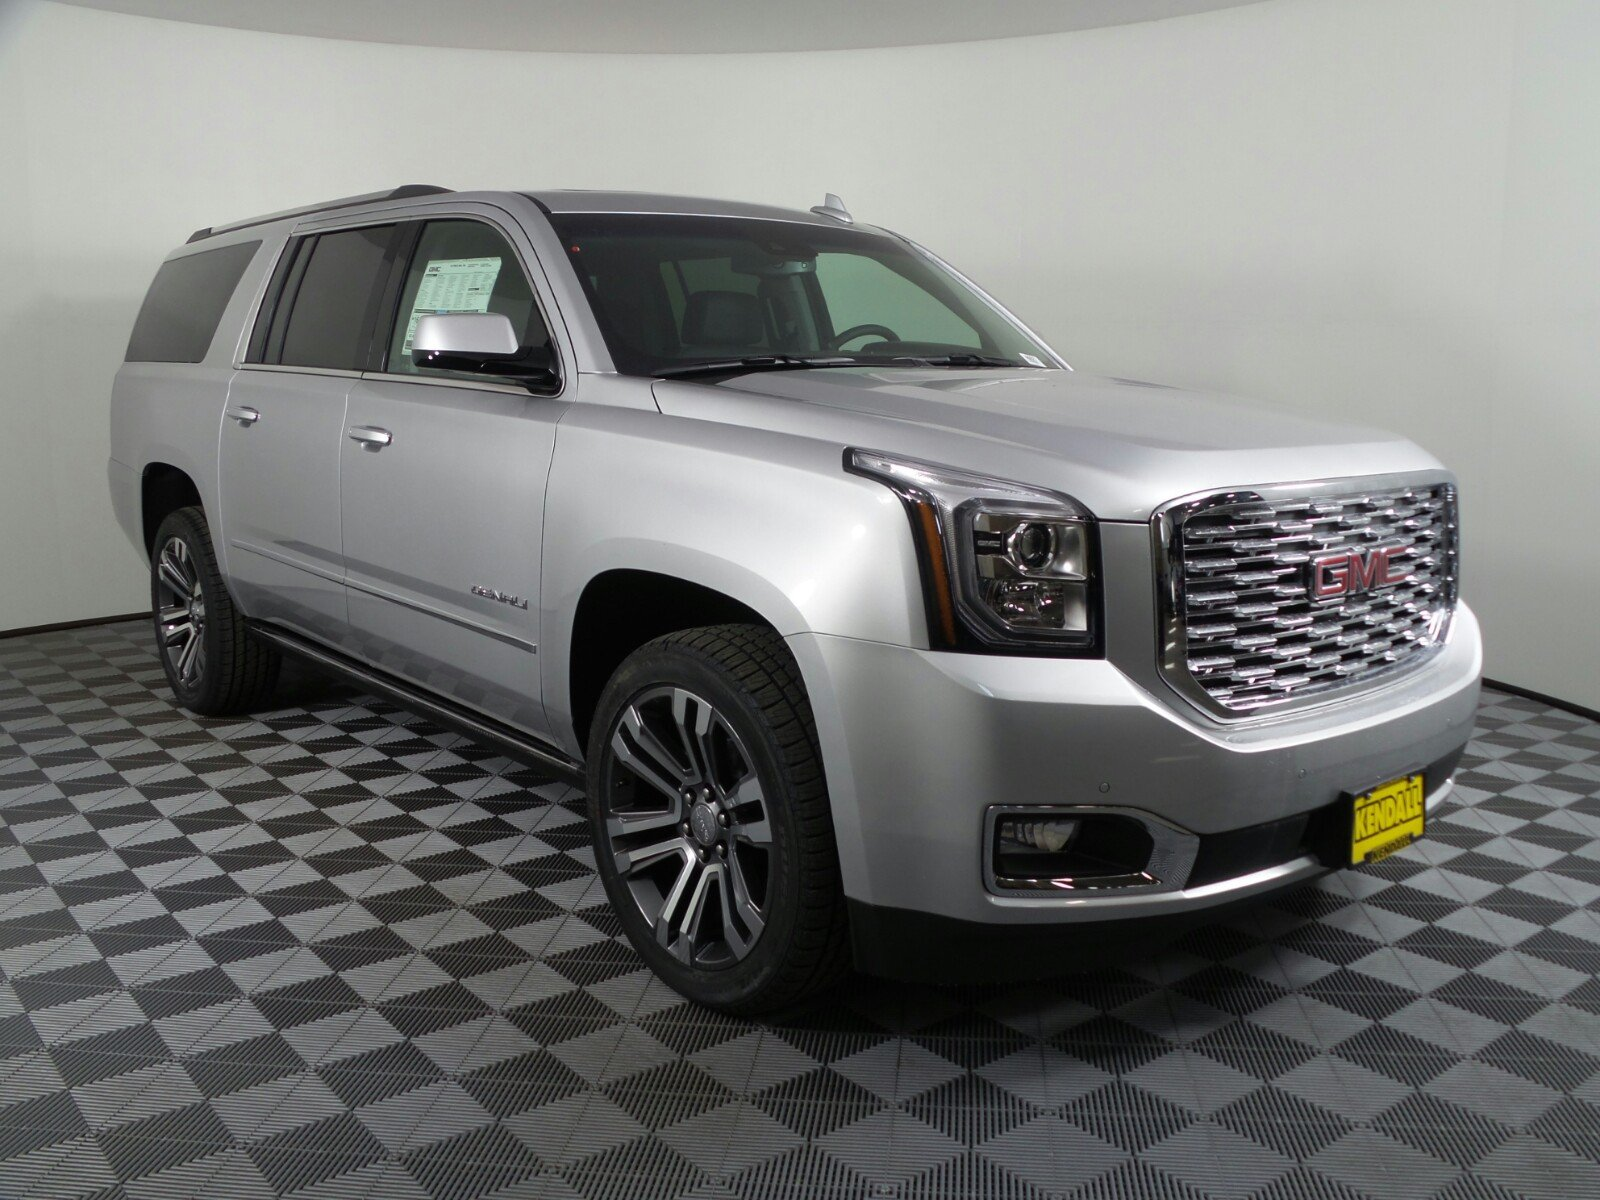 sale south vehiclesearchresults gmc vehicle in used me for vehicles yukon portland photo near